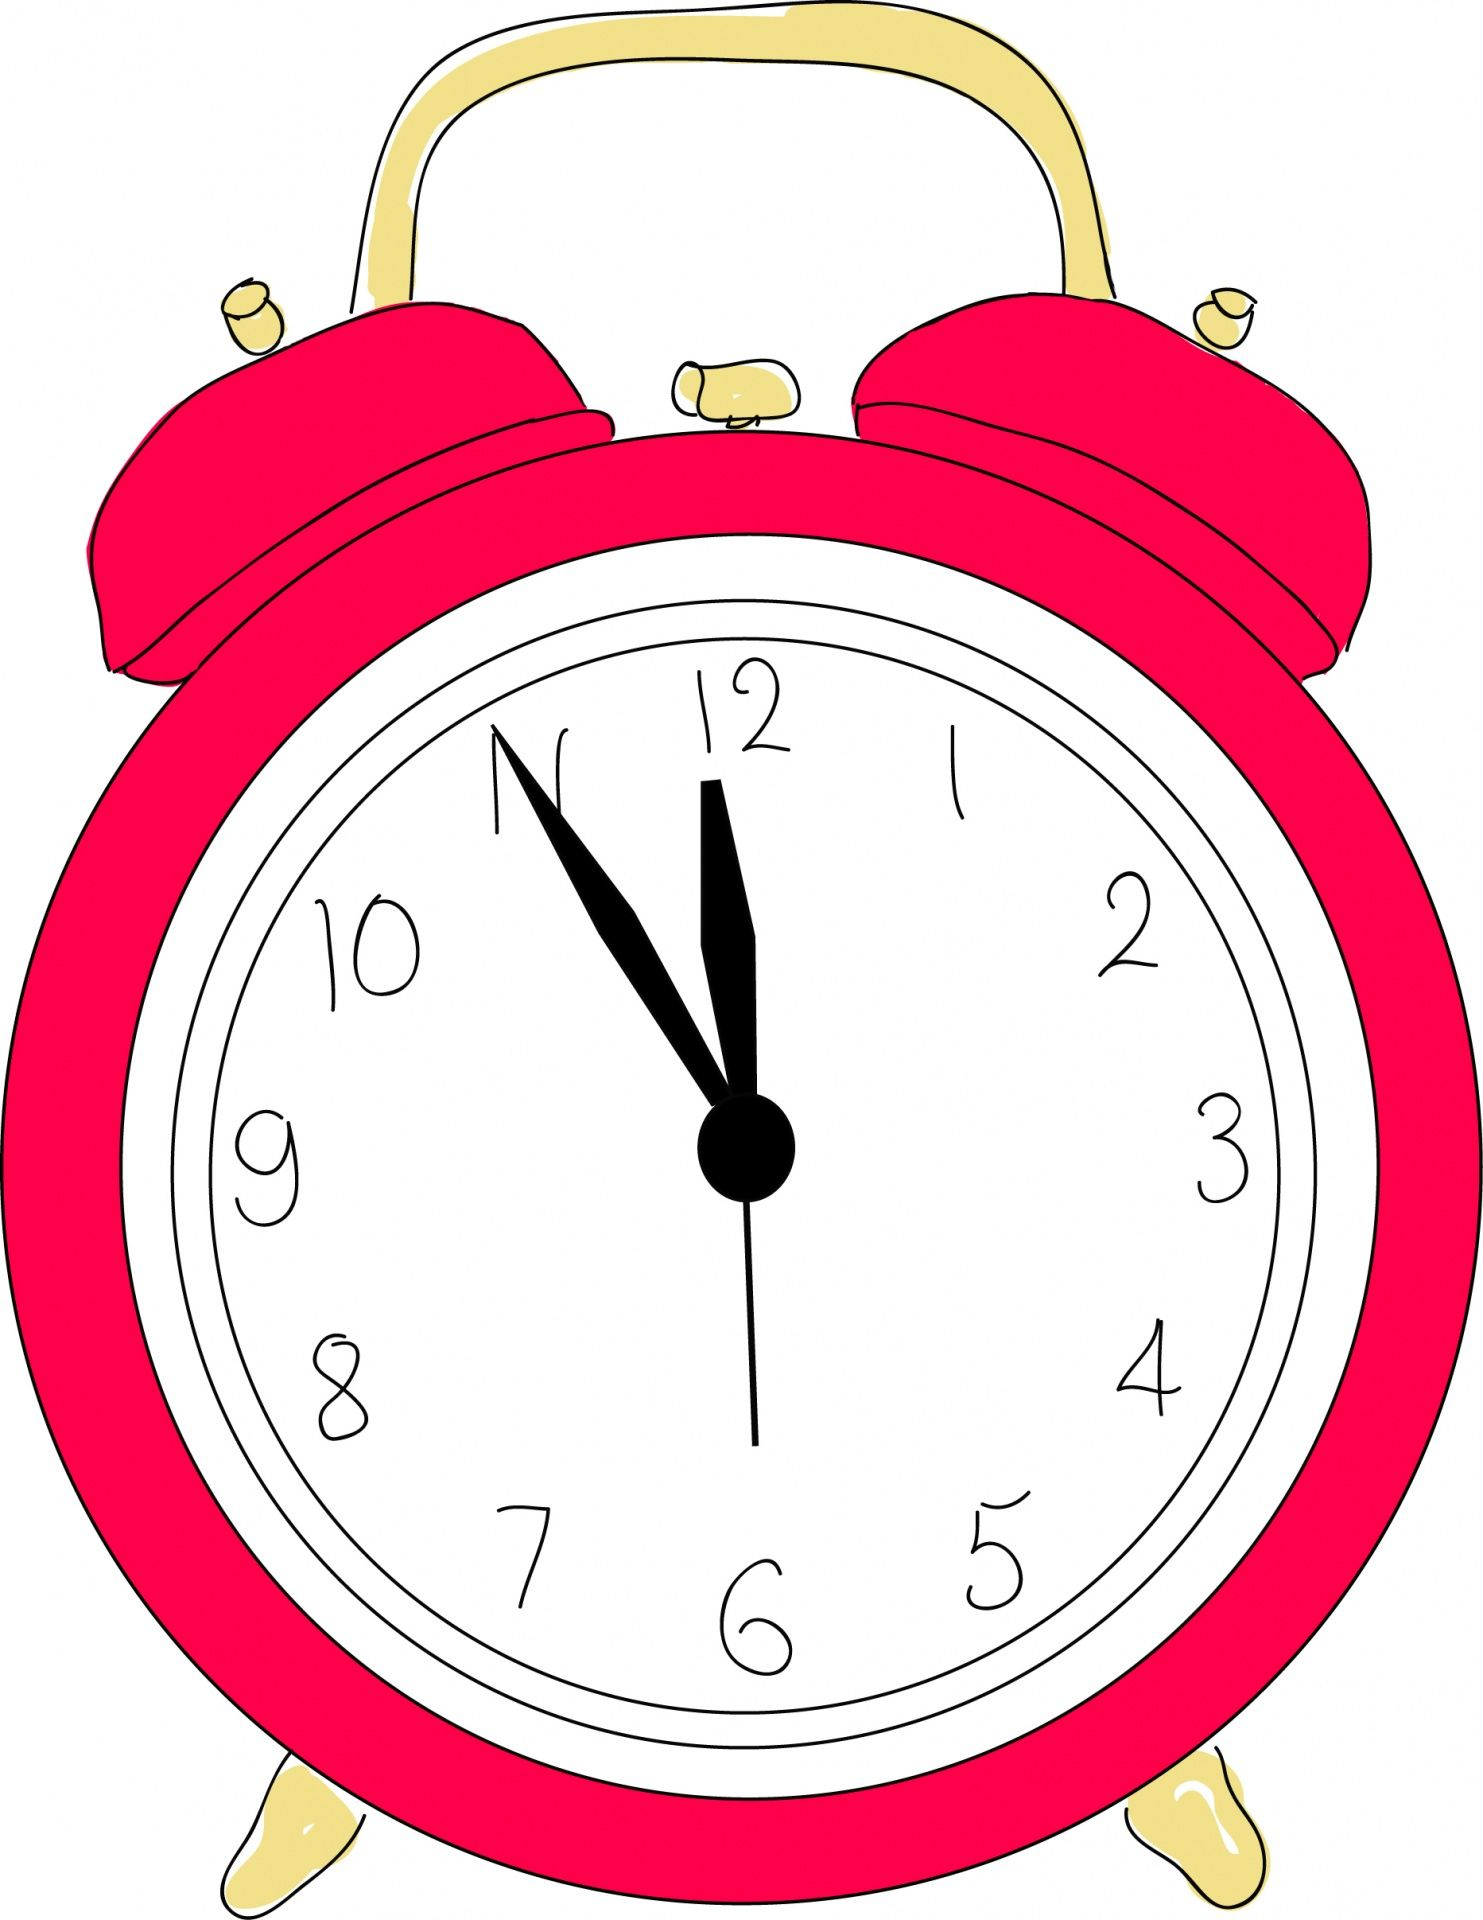 alarm clock clipart cliparts pinterest alarm clocks clocks rh pinterest com alarm clock clipart png alarm clock clipart animated